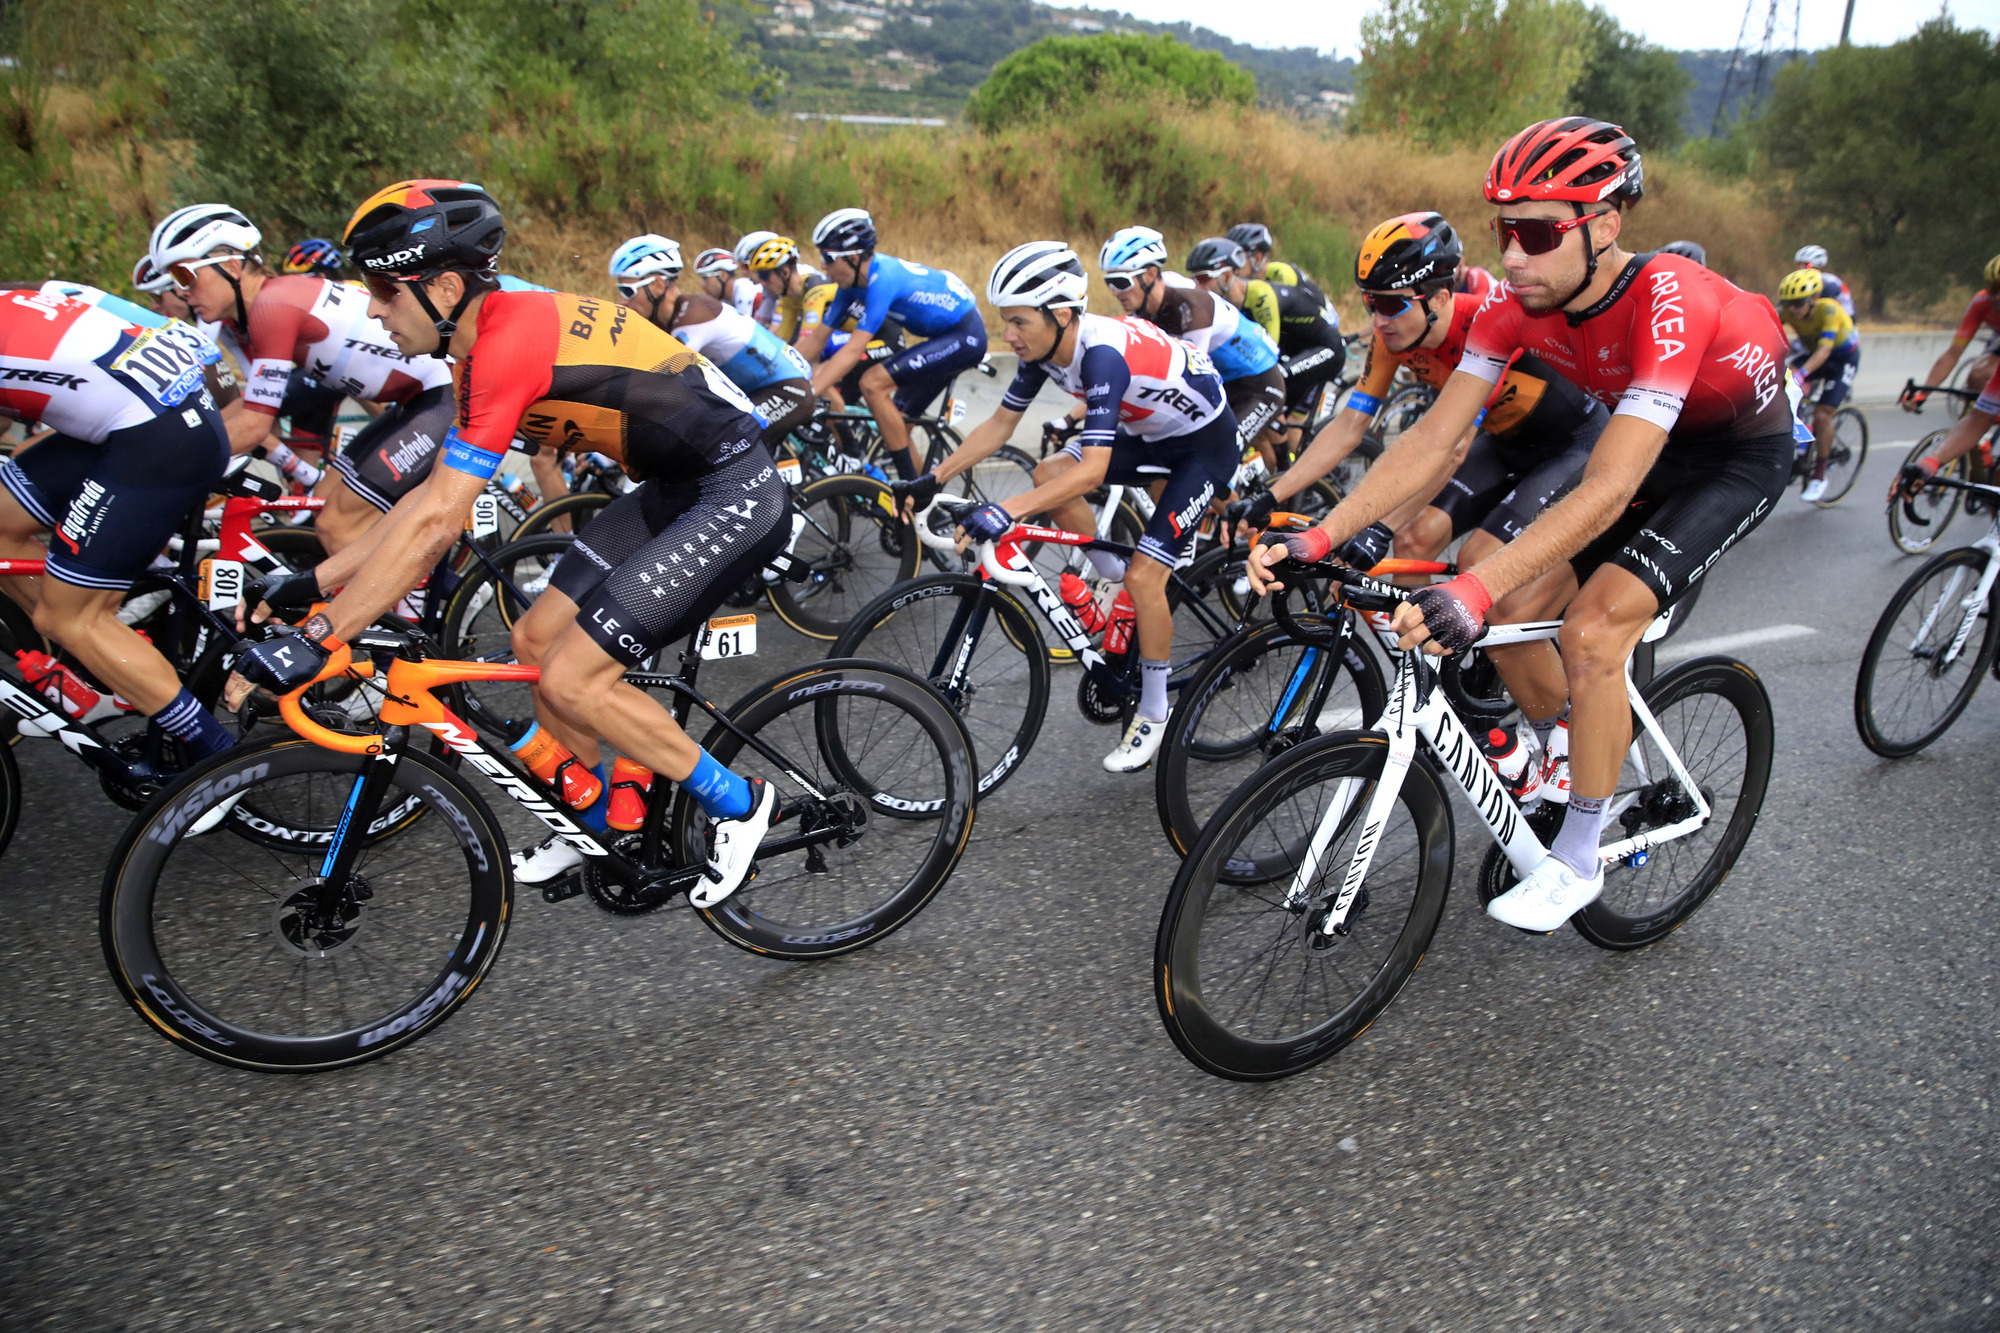 Tour de France 2020 107th Edition 1st stage Nice Nice 156 km 29082020 Mikel Landa ESP Bahrain McLaren Clement Russo FRA Team Arkea Samsic photo Luca BettiniBettiniPhoto2020